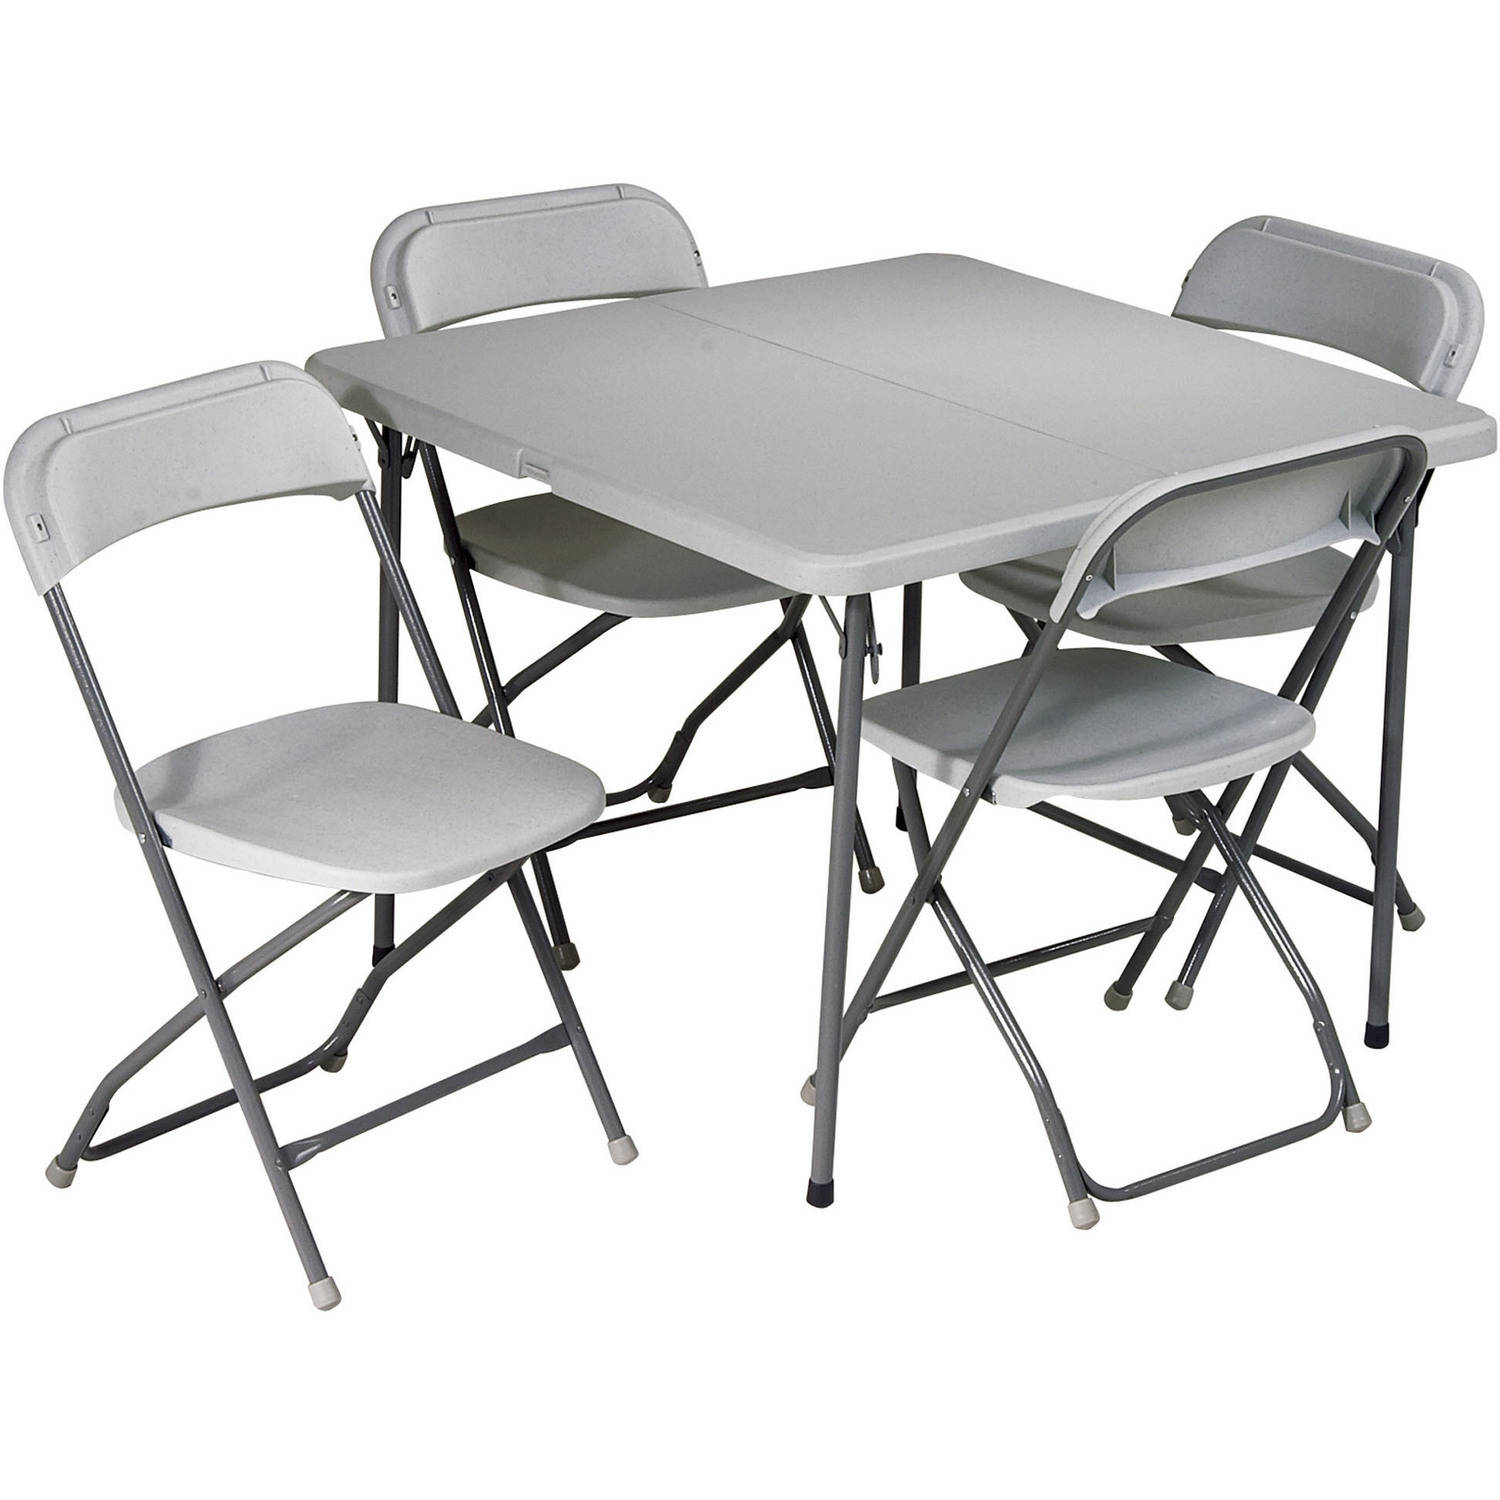 Concept folding table and chairs set office star work smart 5-piece folding table and chair set csdjtfn